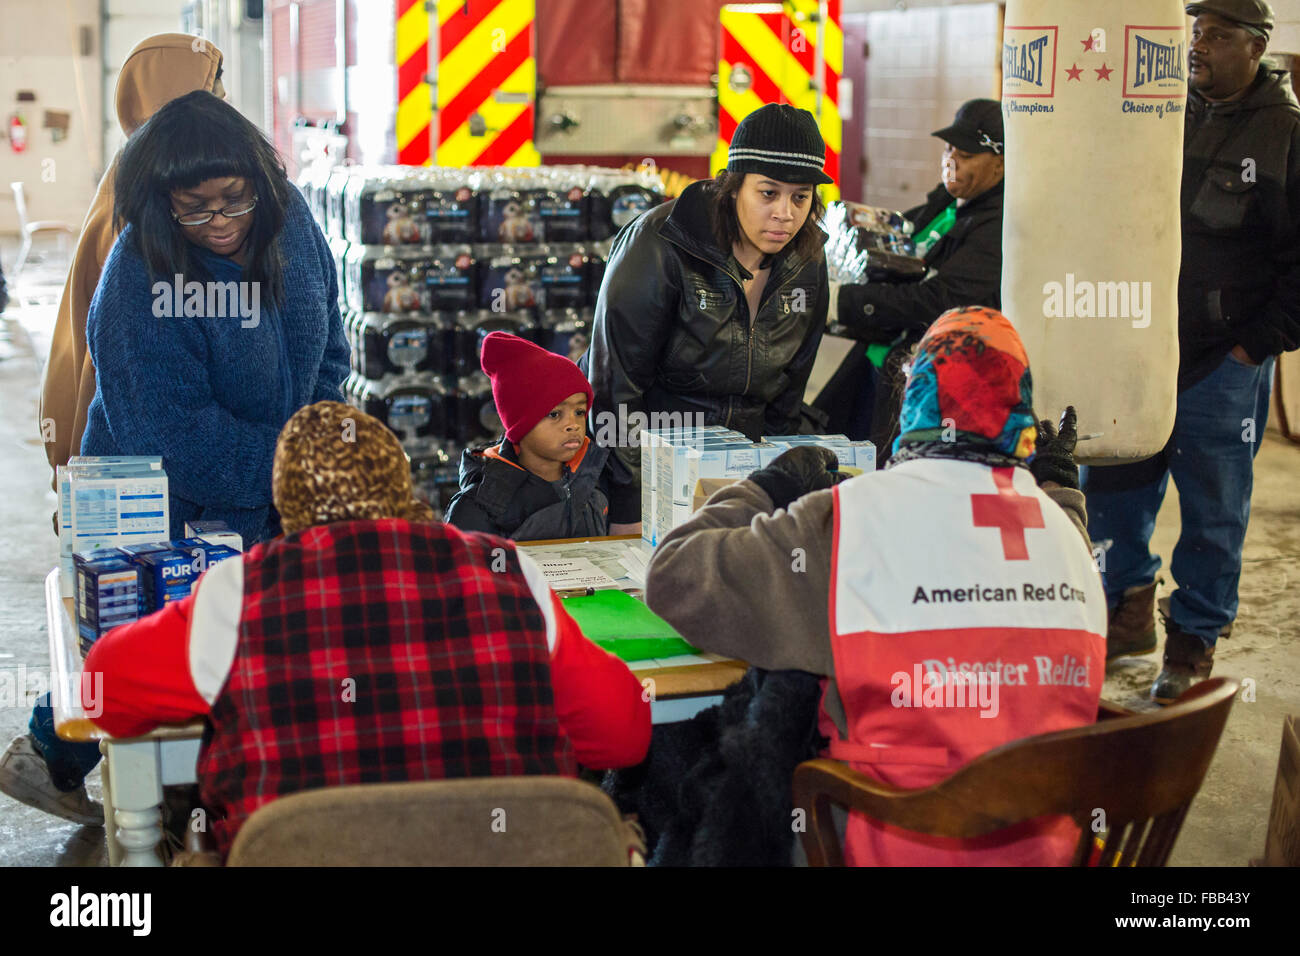 Flint, Michigan USA - 13th January 2016 - Residents pick up bottled water and water filters from Red Cross disaster - Stock Image